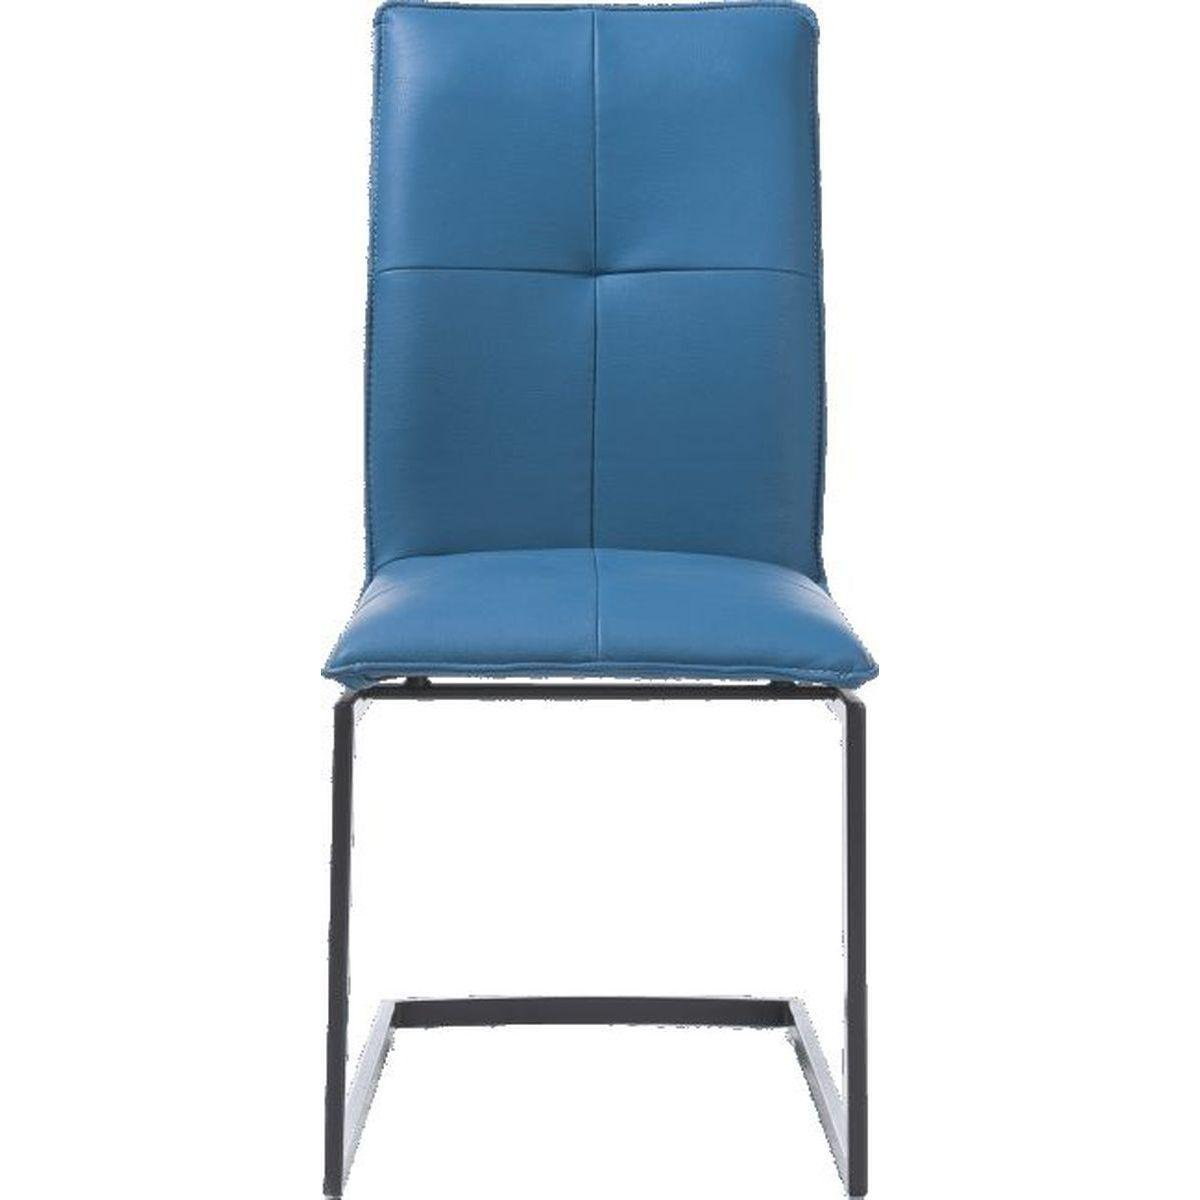 Chaise MITCH Xooon bleu